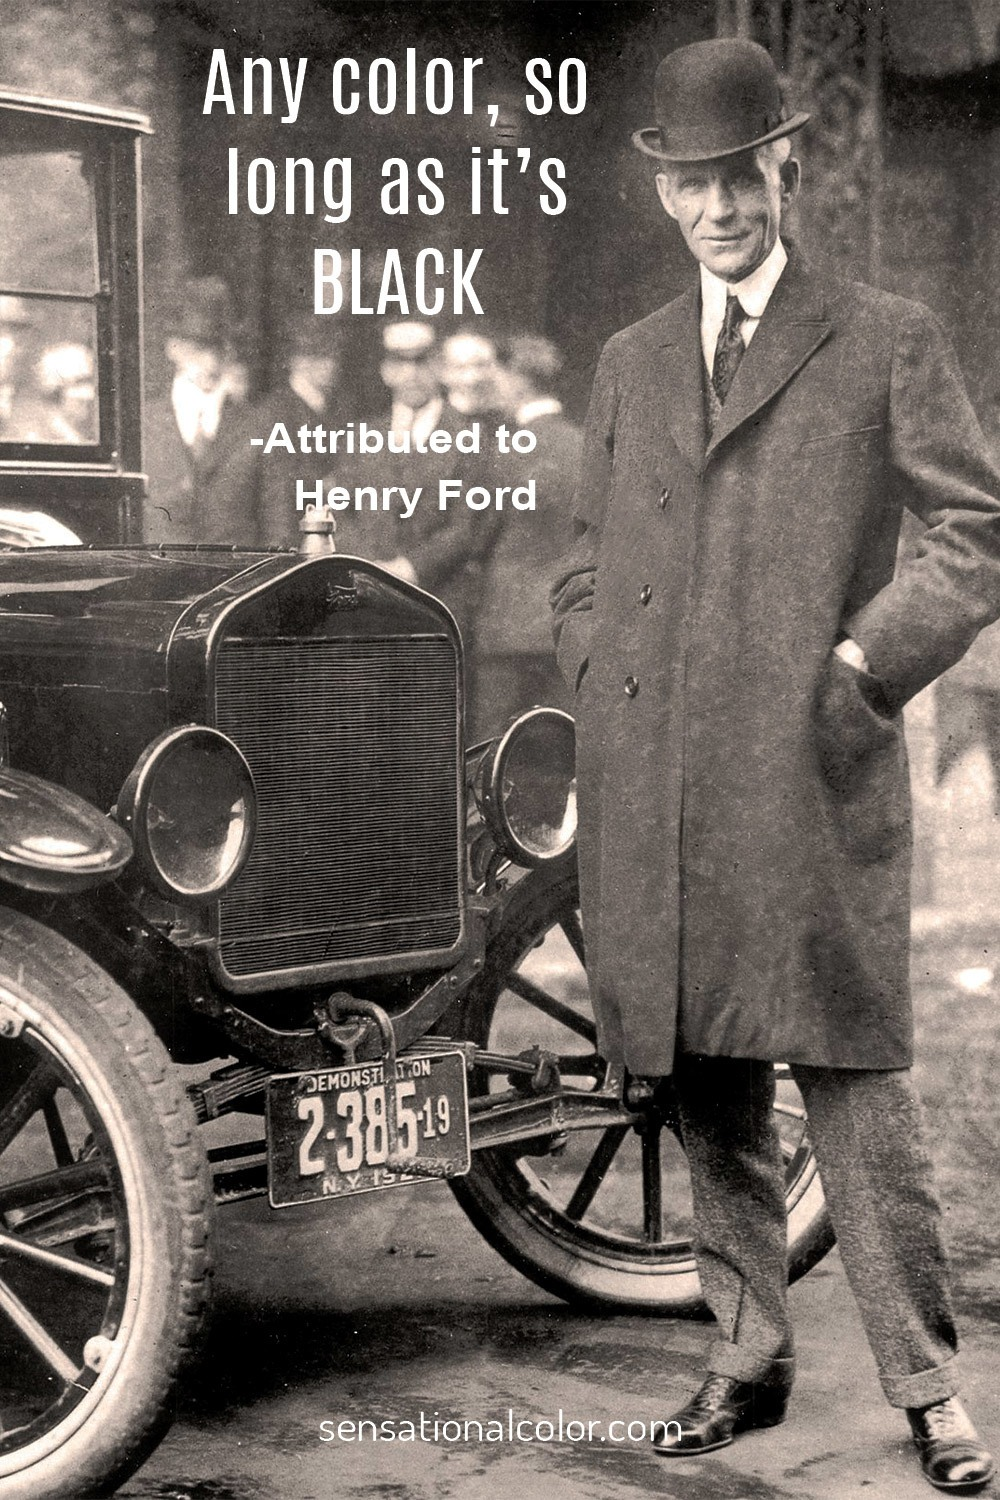 """Any color, so long as it's black.""-Attributed to Henry Ford"